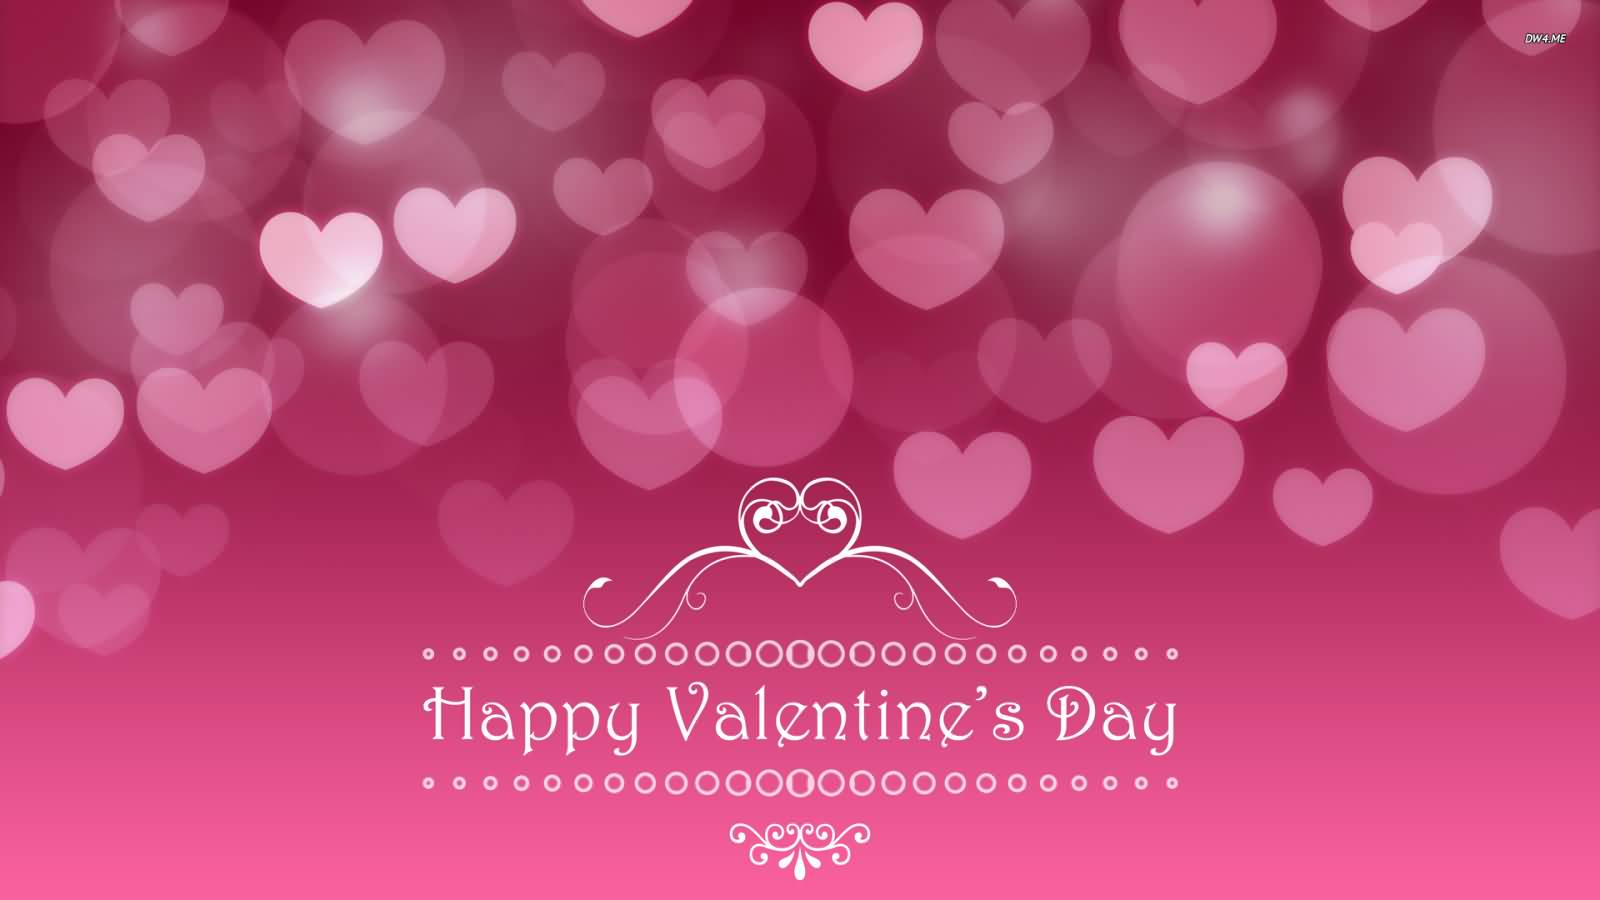 Happy Valentine's Day Pink Background Wallpaper